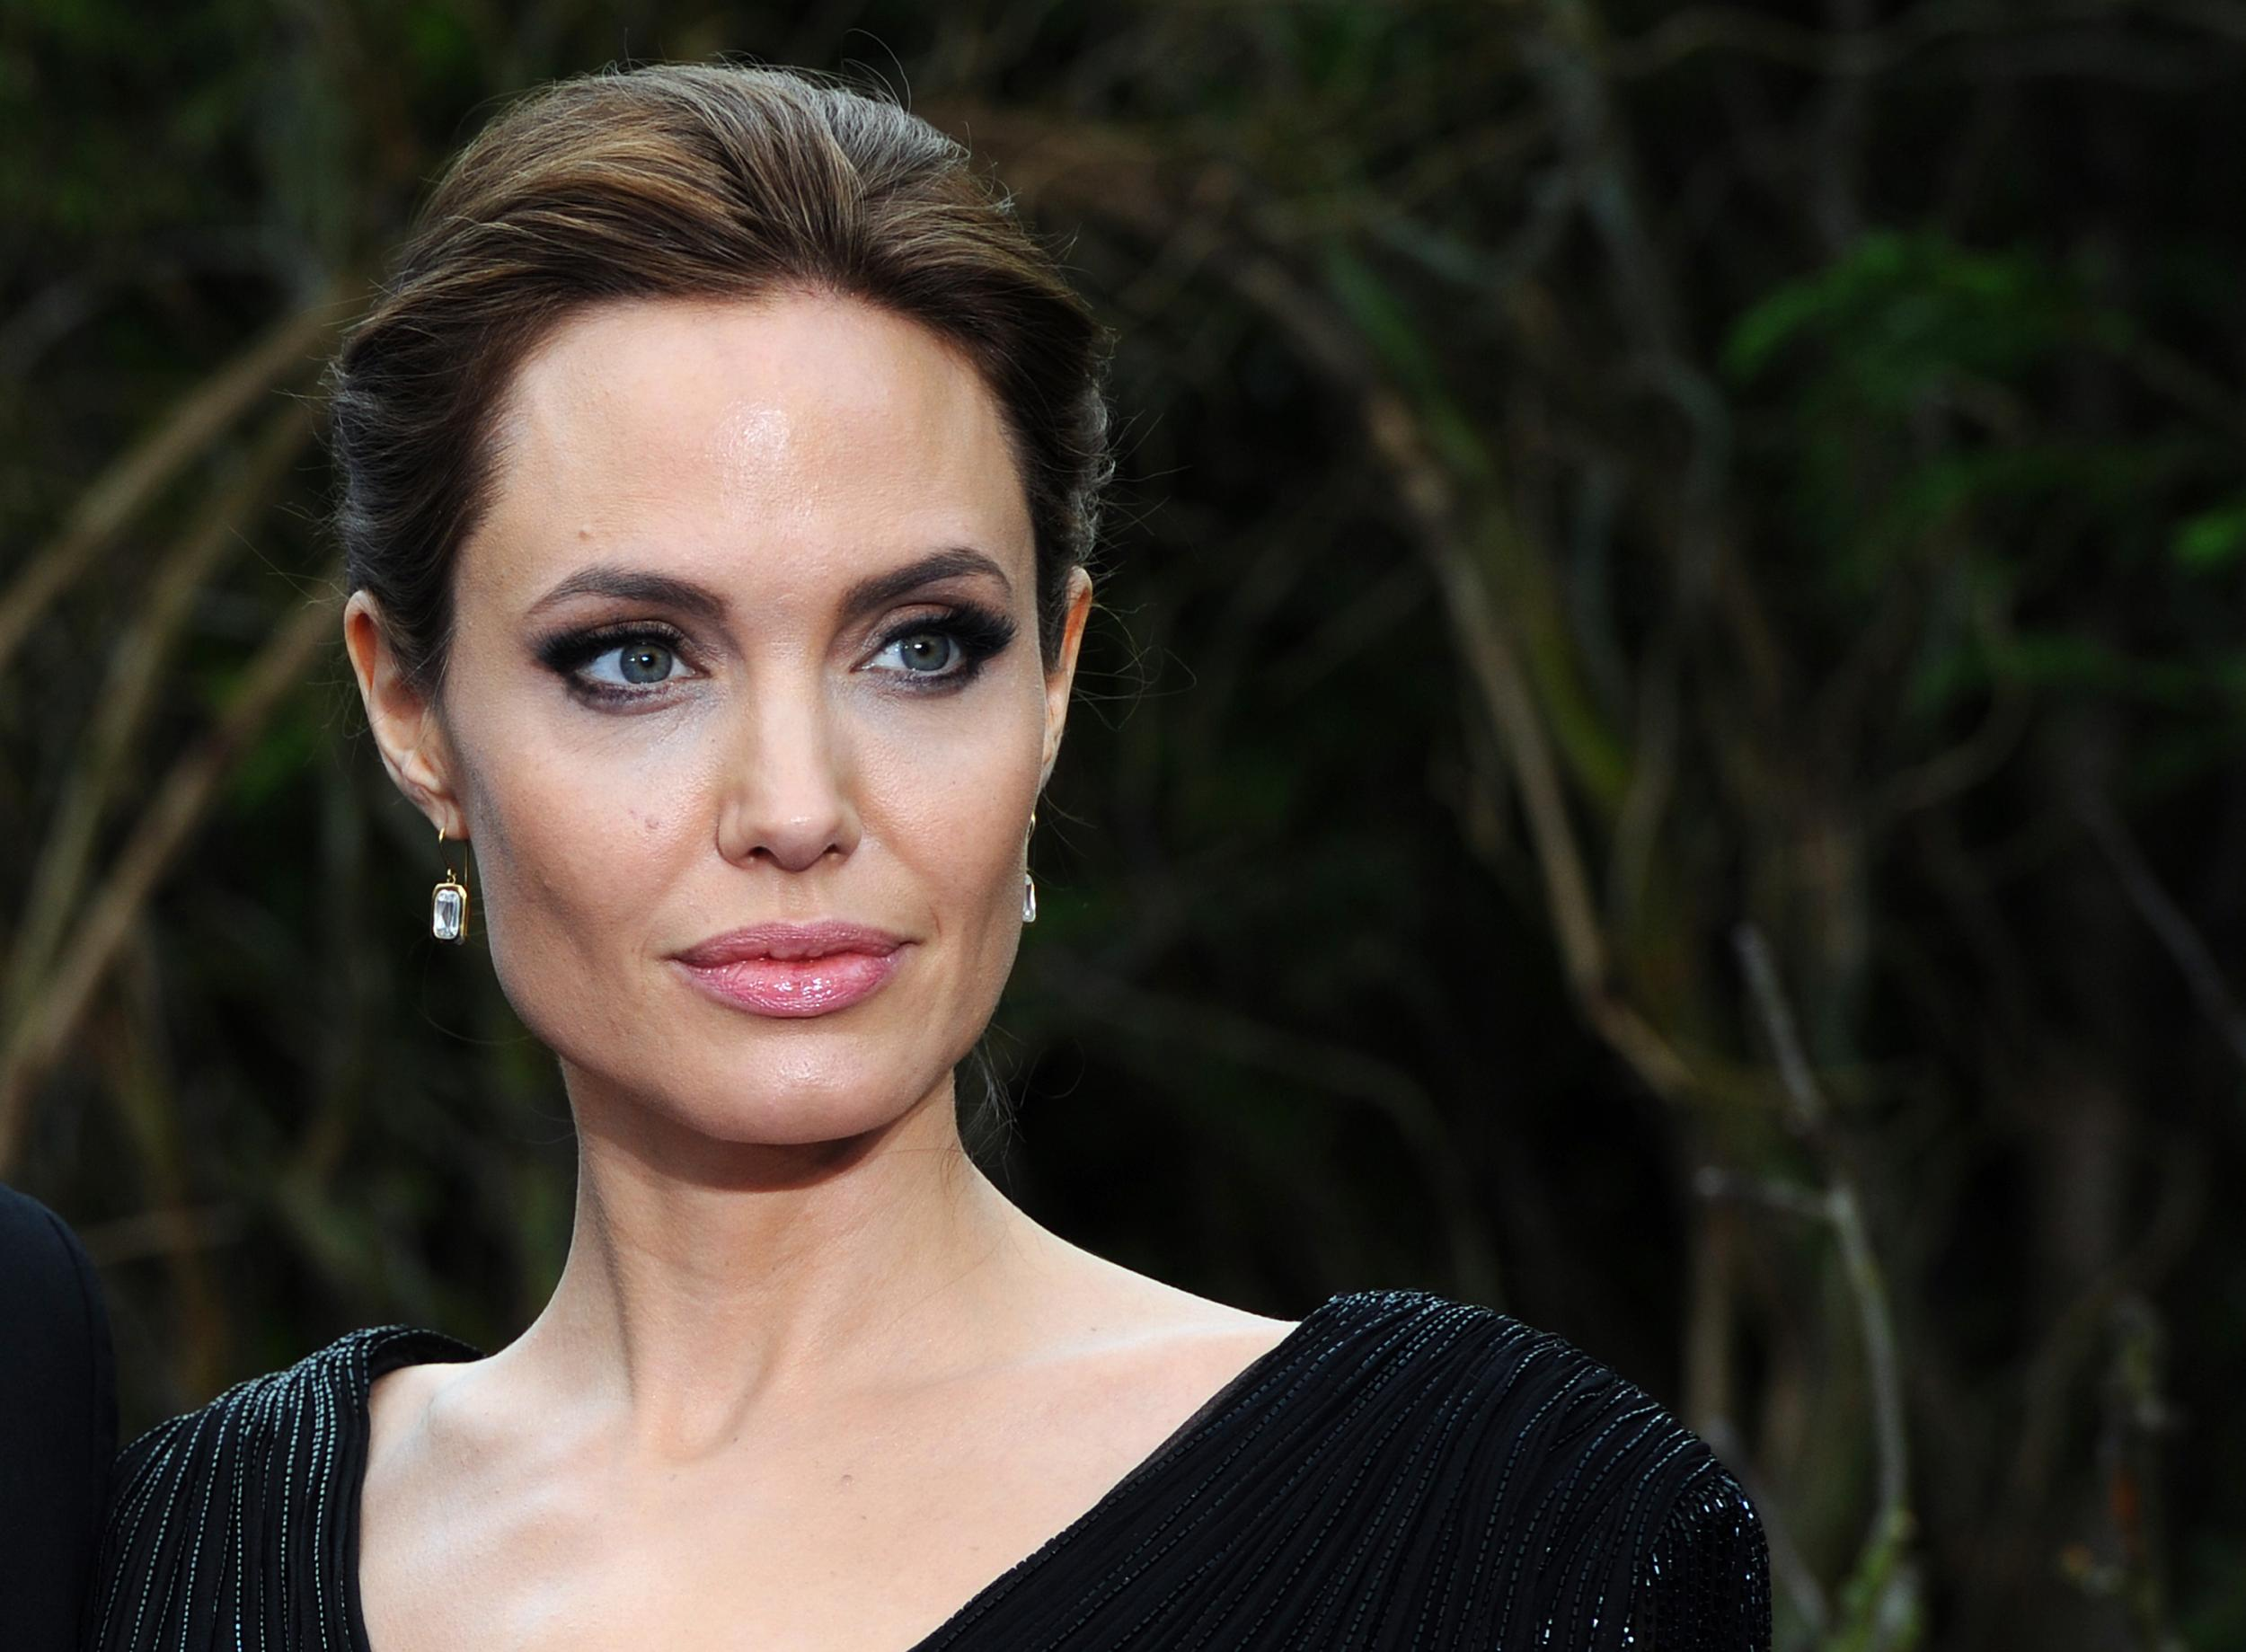 Angelina Jolie All Sex Videos sexual violence is 'not just a problem for women', says